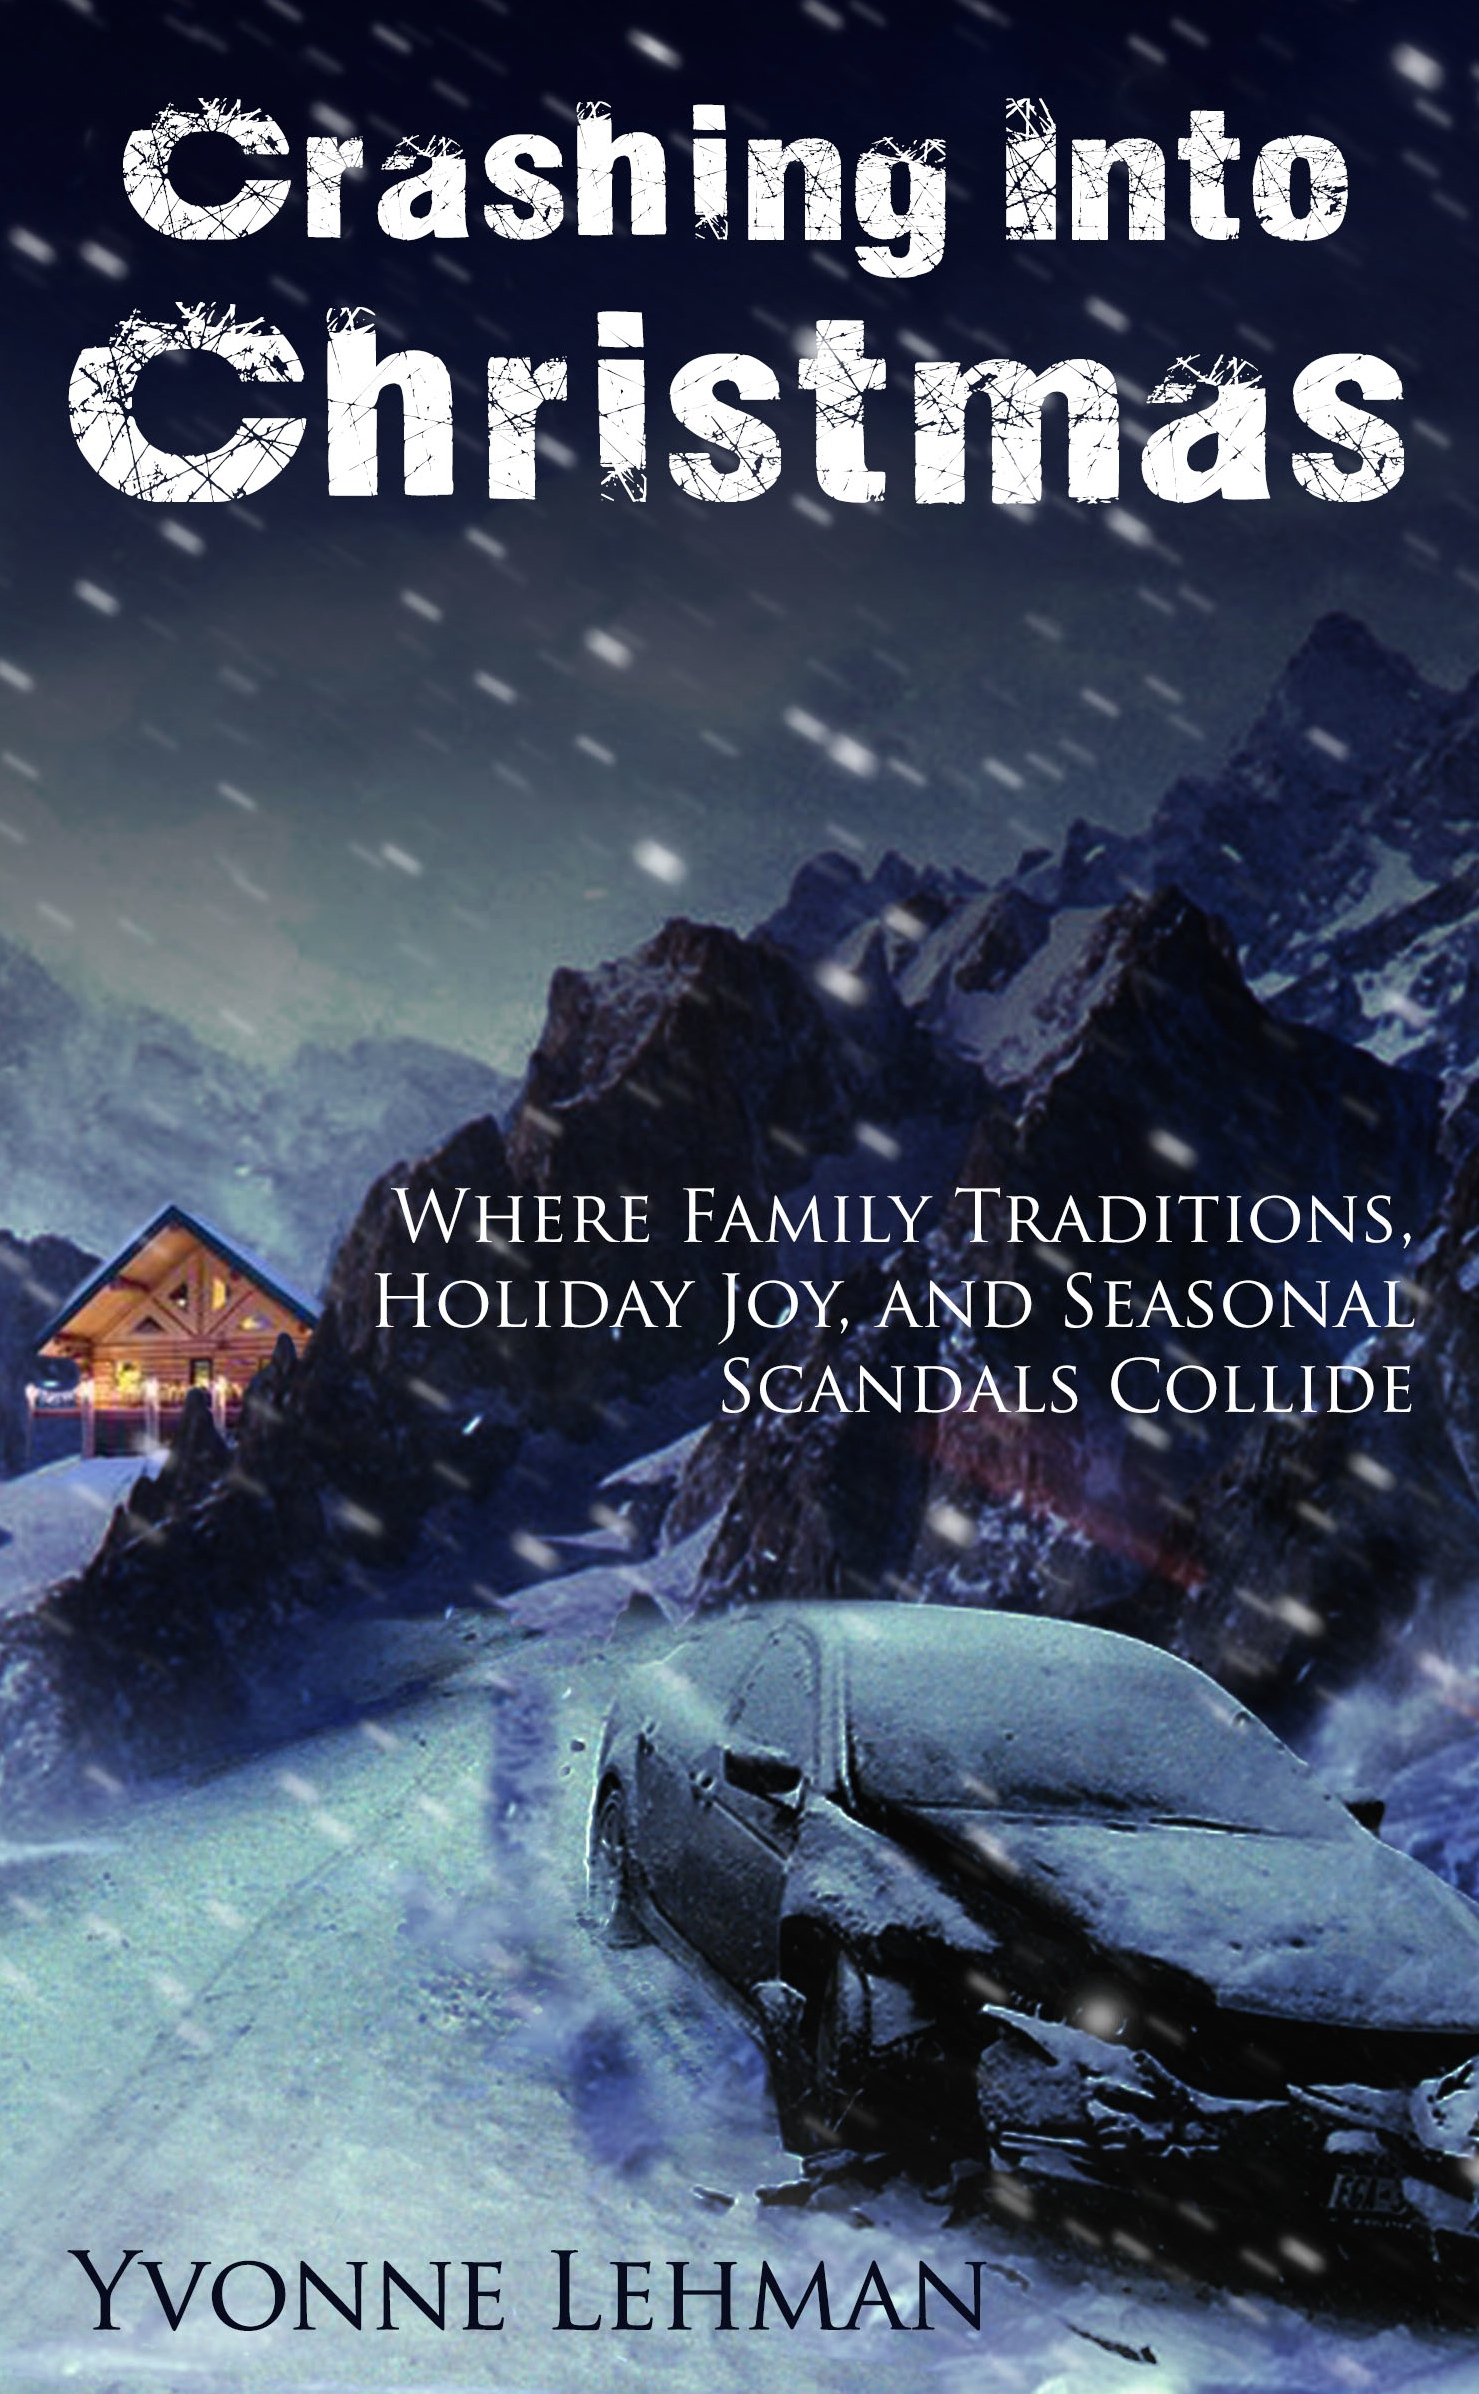 Crashing Into Christmas - Where Family Traditions, Holiday Joy, and Seasonal Scandals Collide Paperback – October 20, 2014